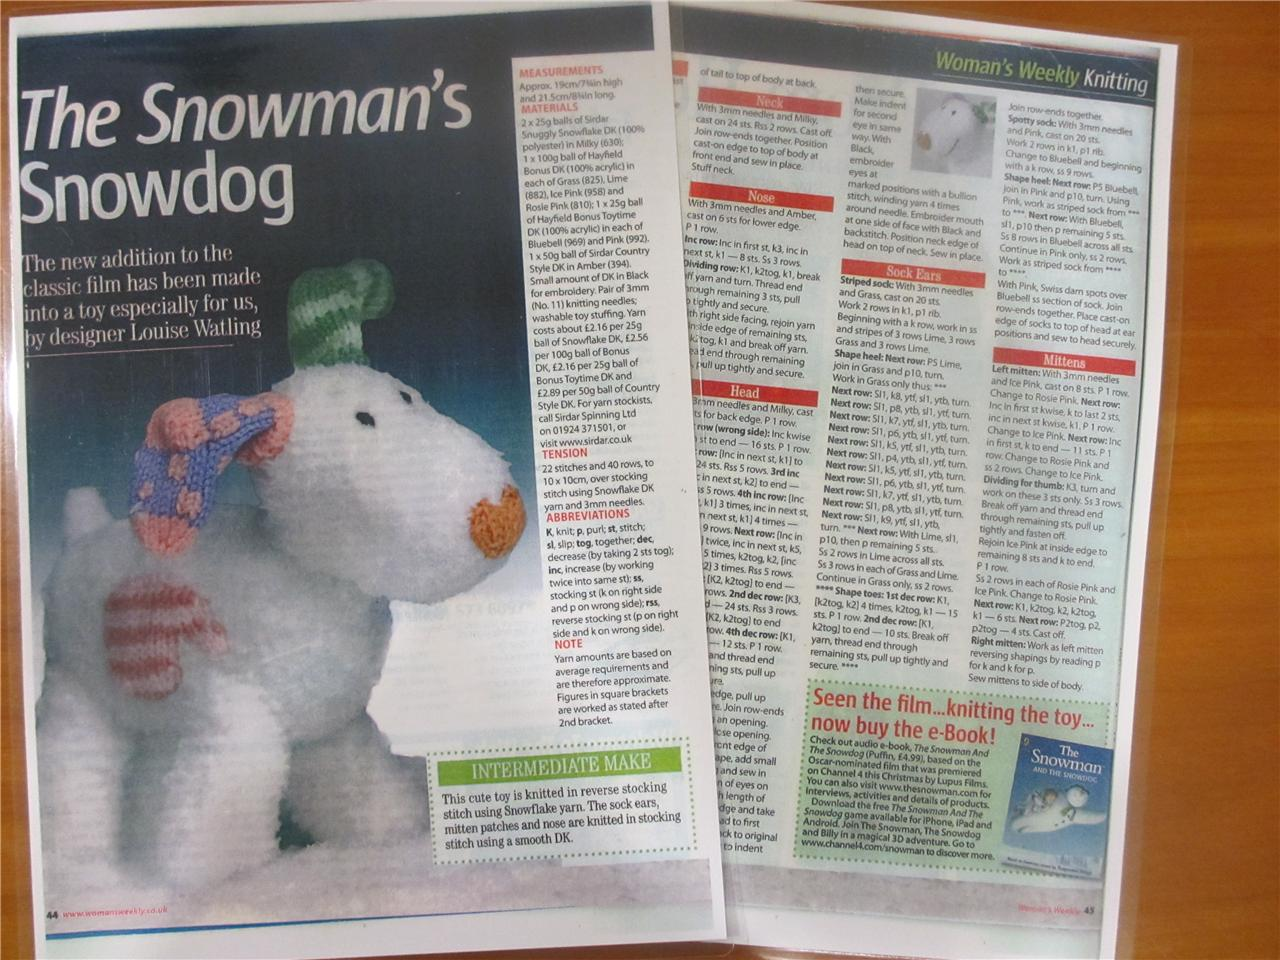 Snow dog from the snowman childrens movie book by raymond briggs bankloansurffo Choice Image